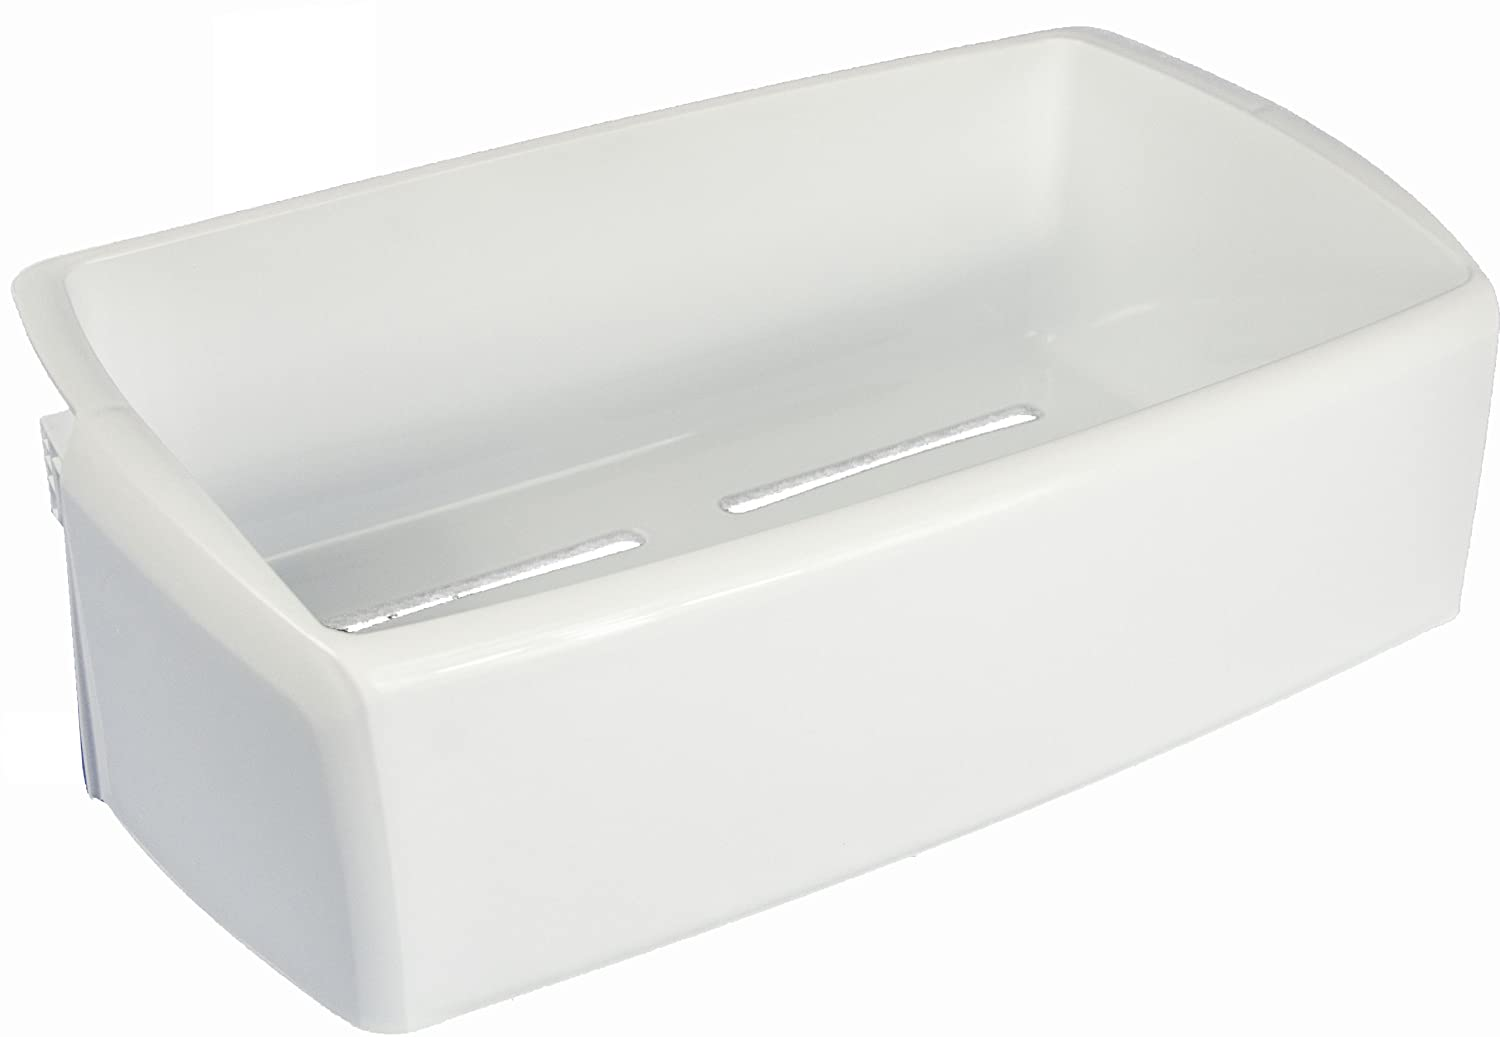 LG Electronics MAN62069201 Refrigerator Door Shelf/Bin, White